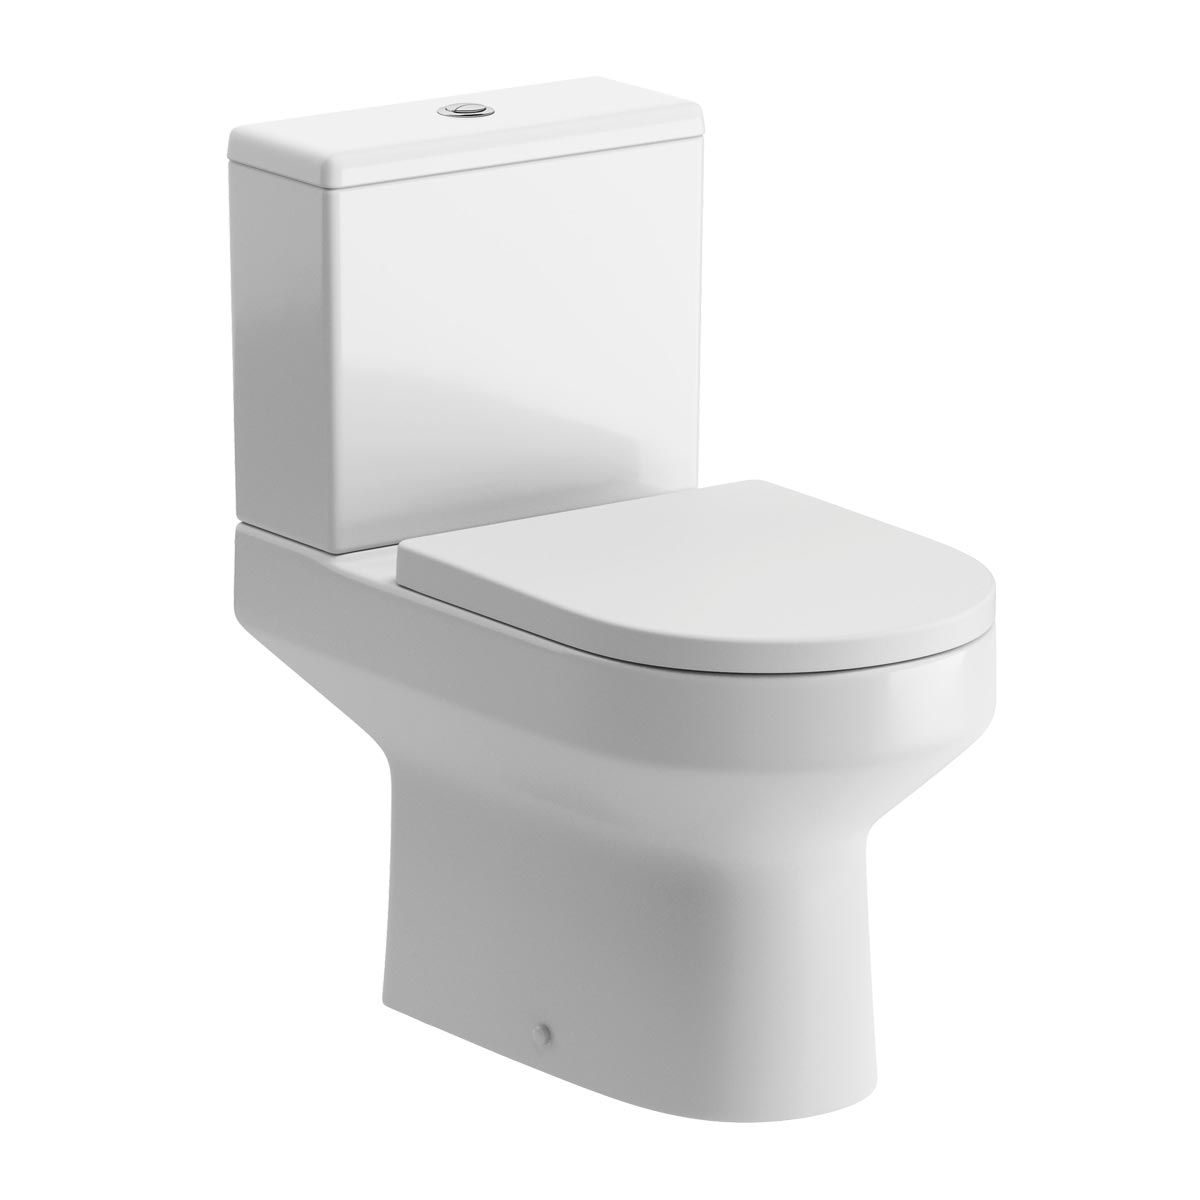 BTL White Laurus² Fully Comfort Height Coupled Toilet & Soft Close Seat